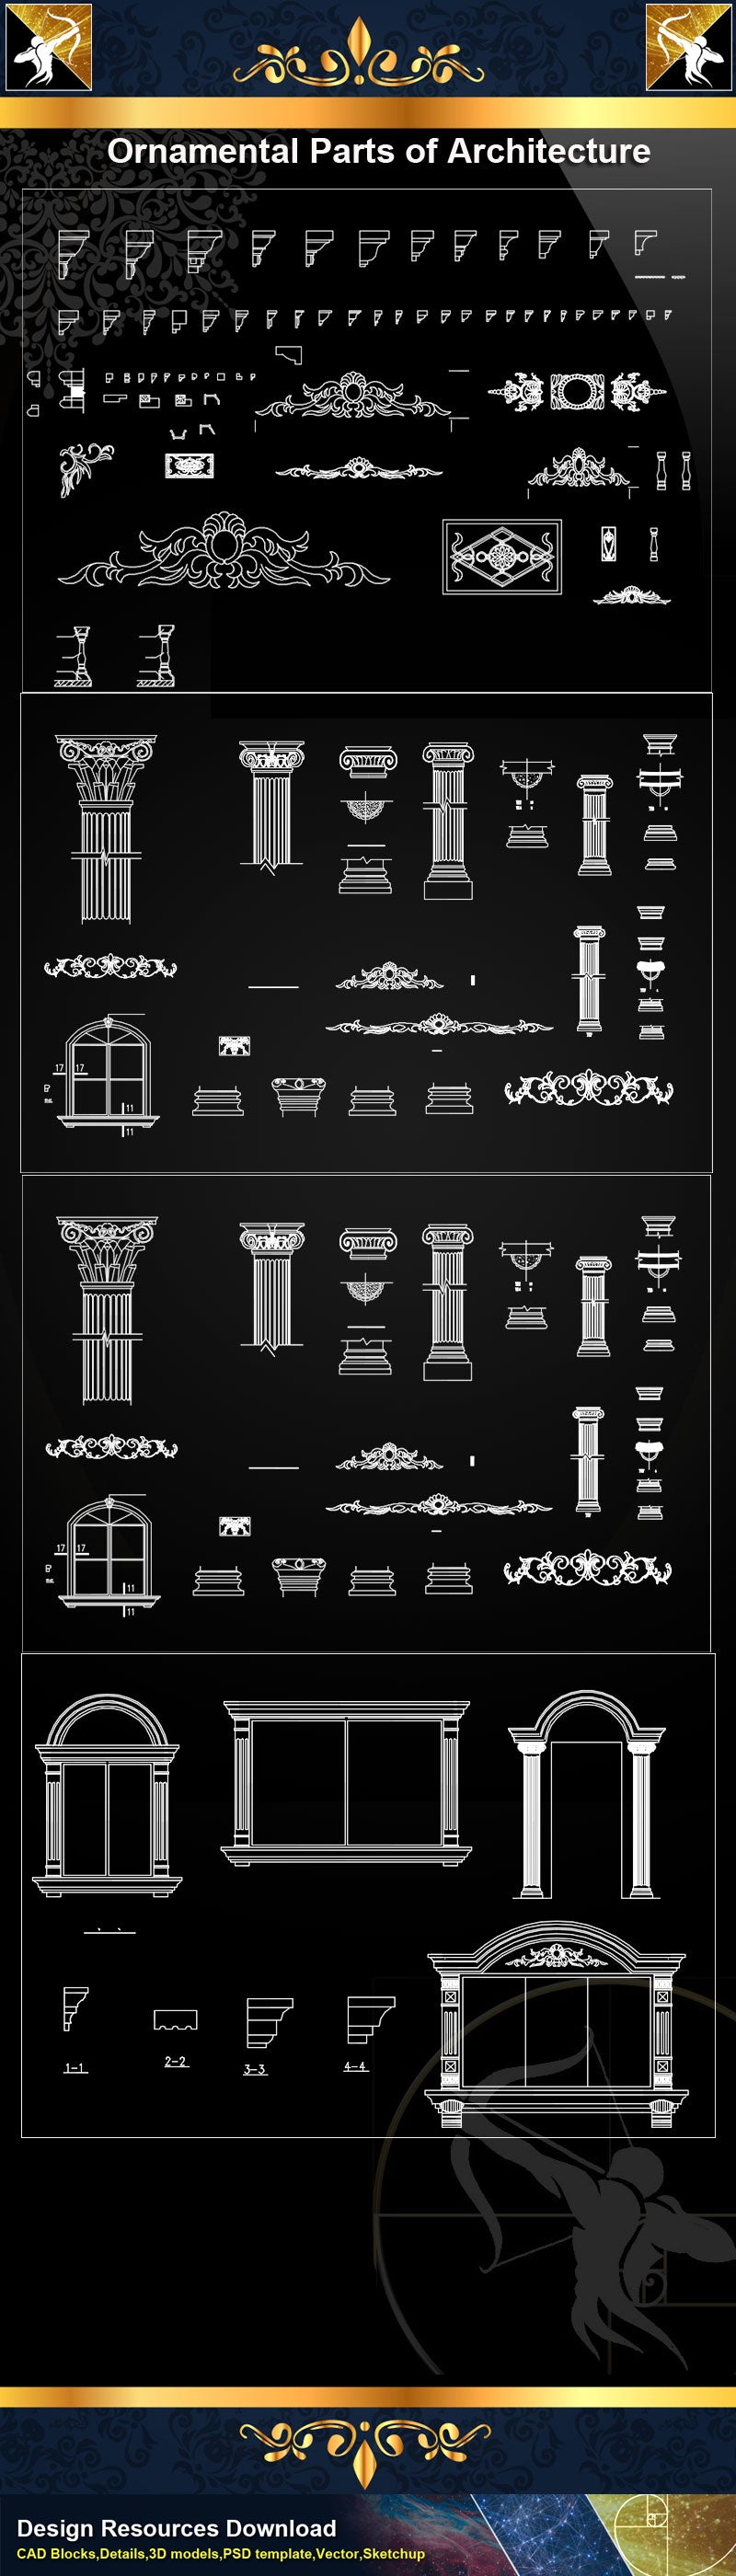 ★Ornamental Parts of Architecture 8